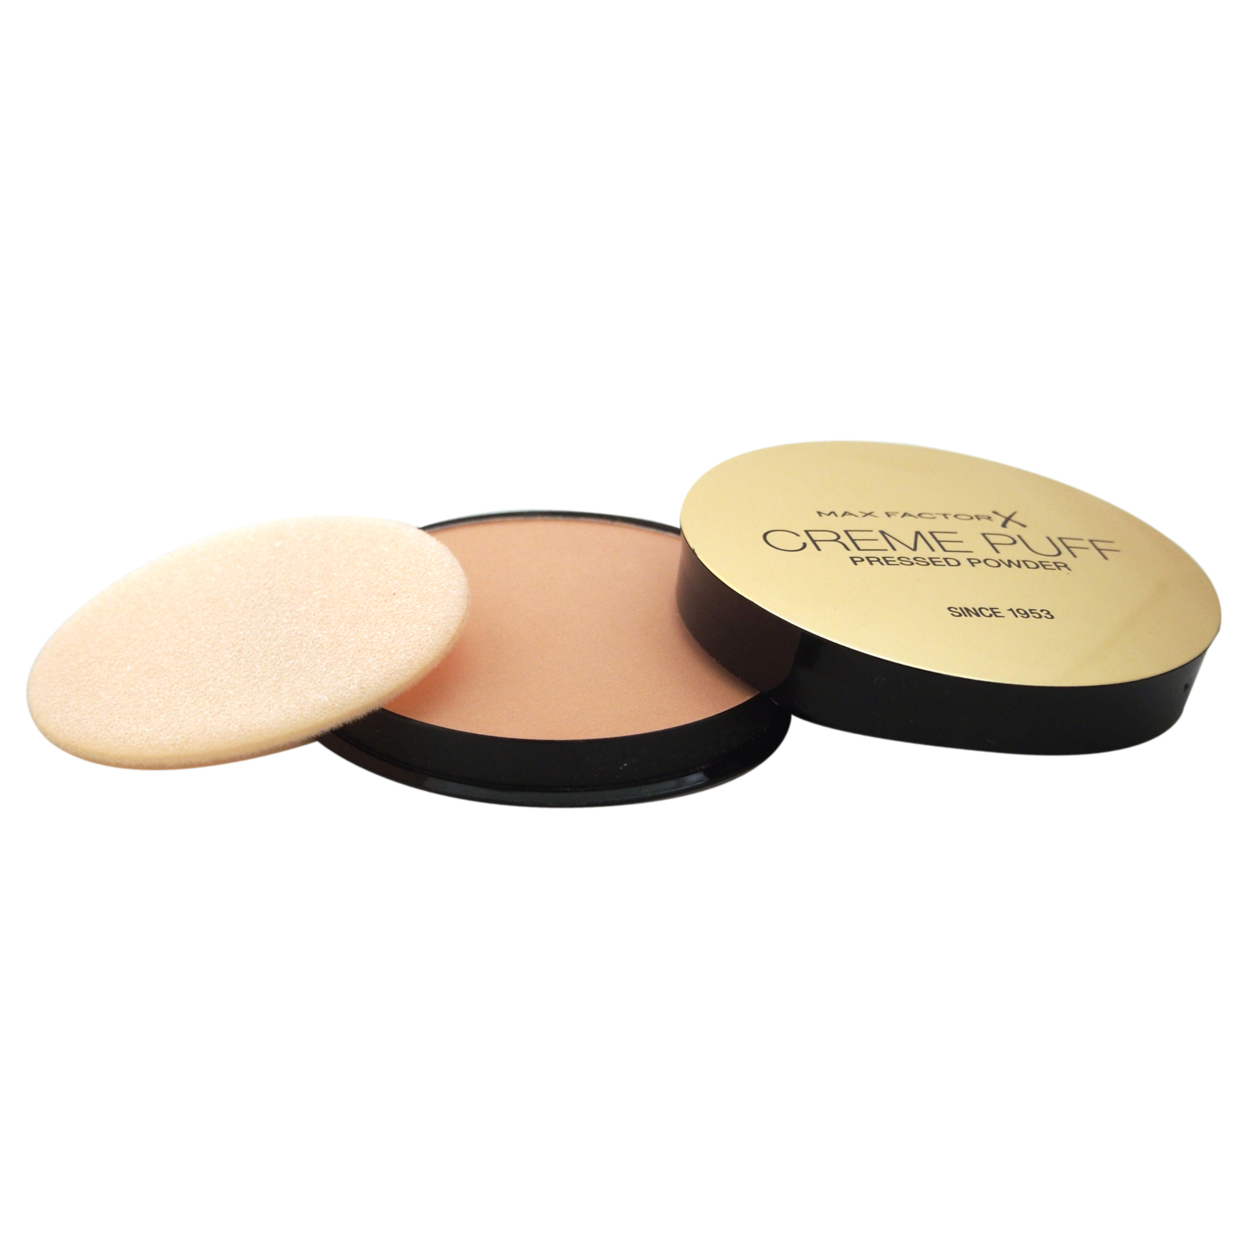 Creme Puff - # 53 Tempting Touch by Max Factor for Women - 21 g Foundation 55bf9d85a2771ca8518b49ad